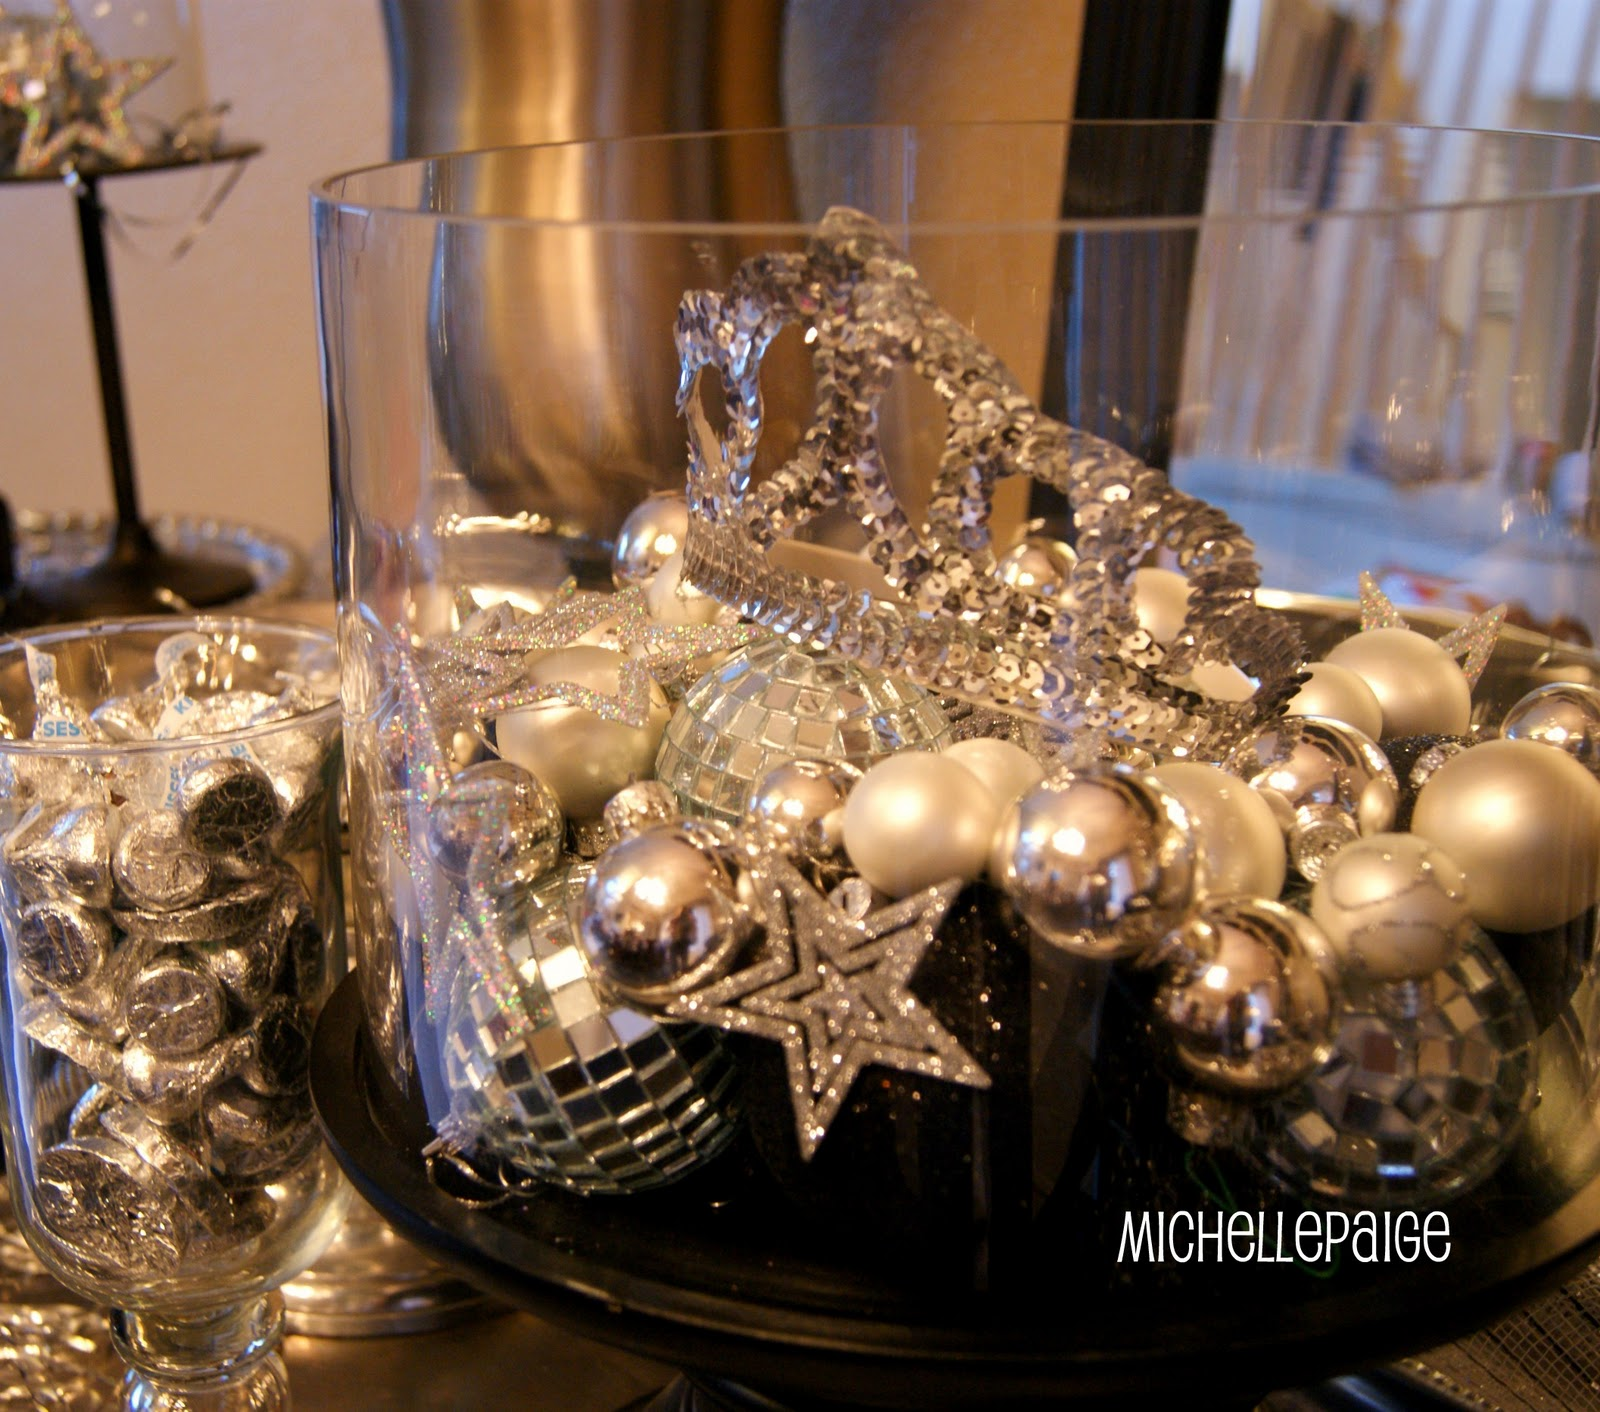 Michelle paige blogs new year 39 s eve decor for Decoration new year